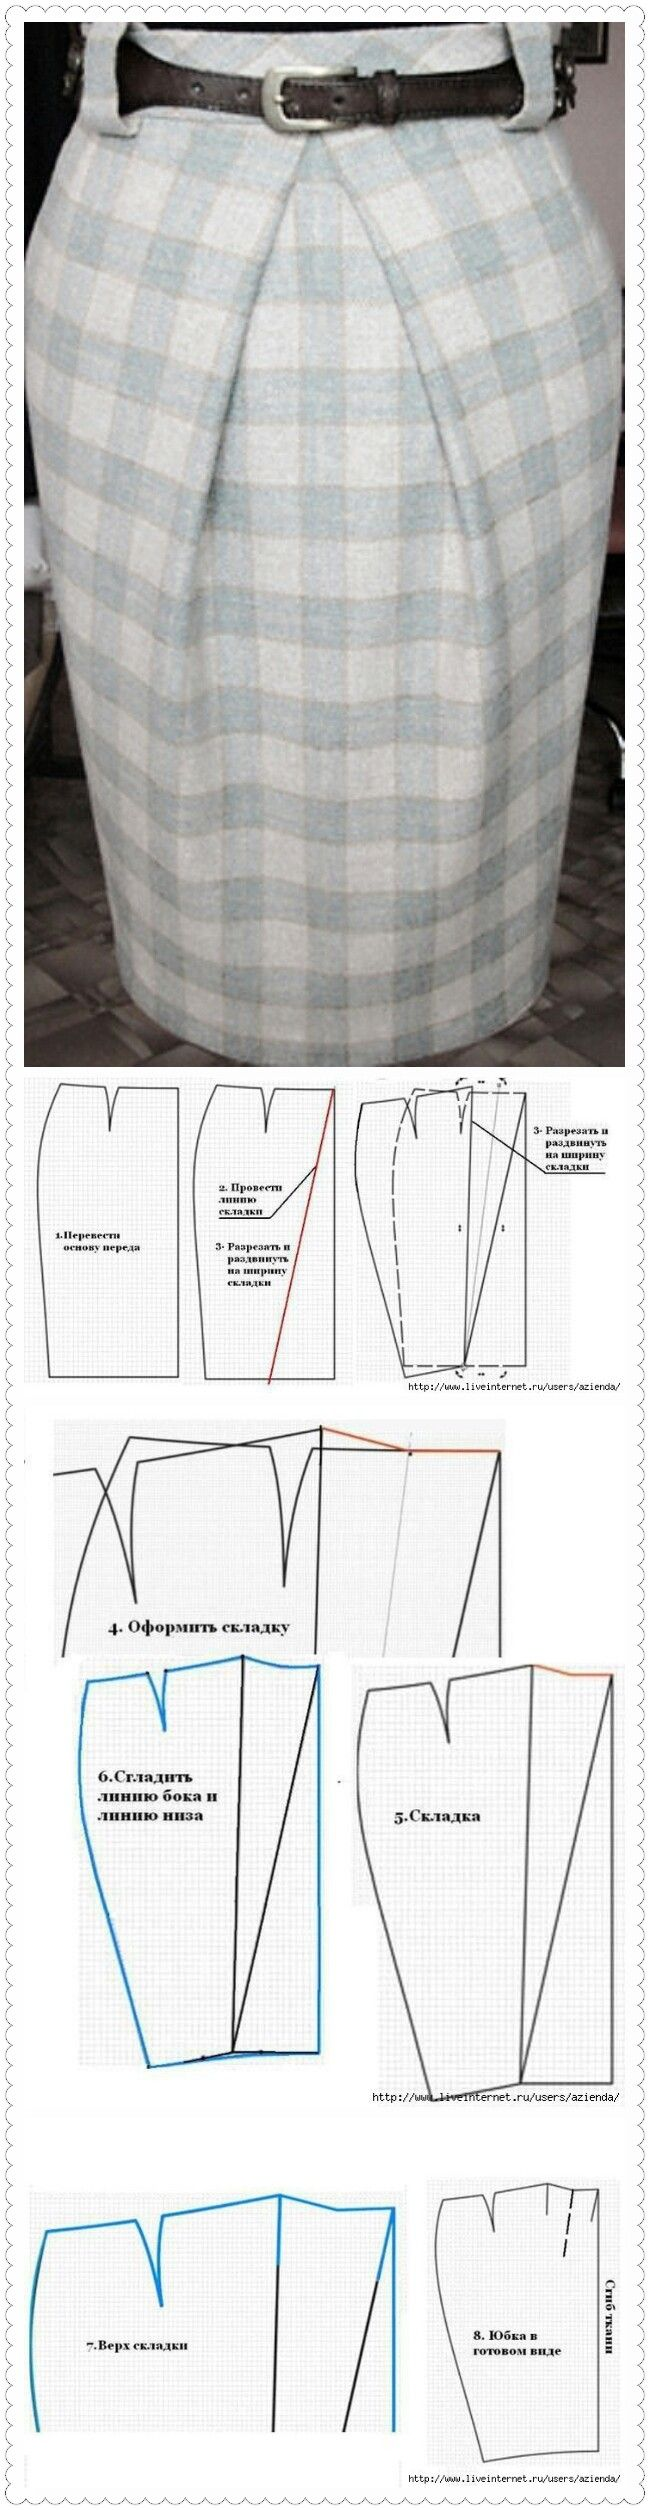 48 best faldas images on Pinterest | Skirts, Sewing patterns and ...